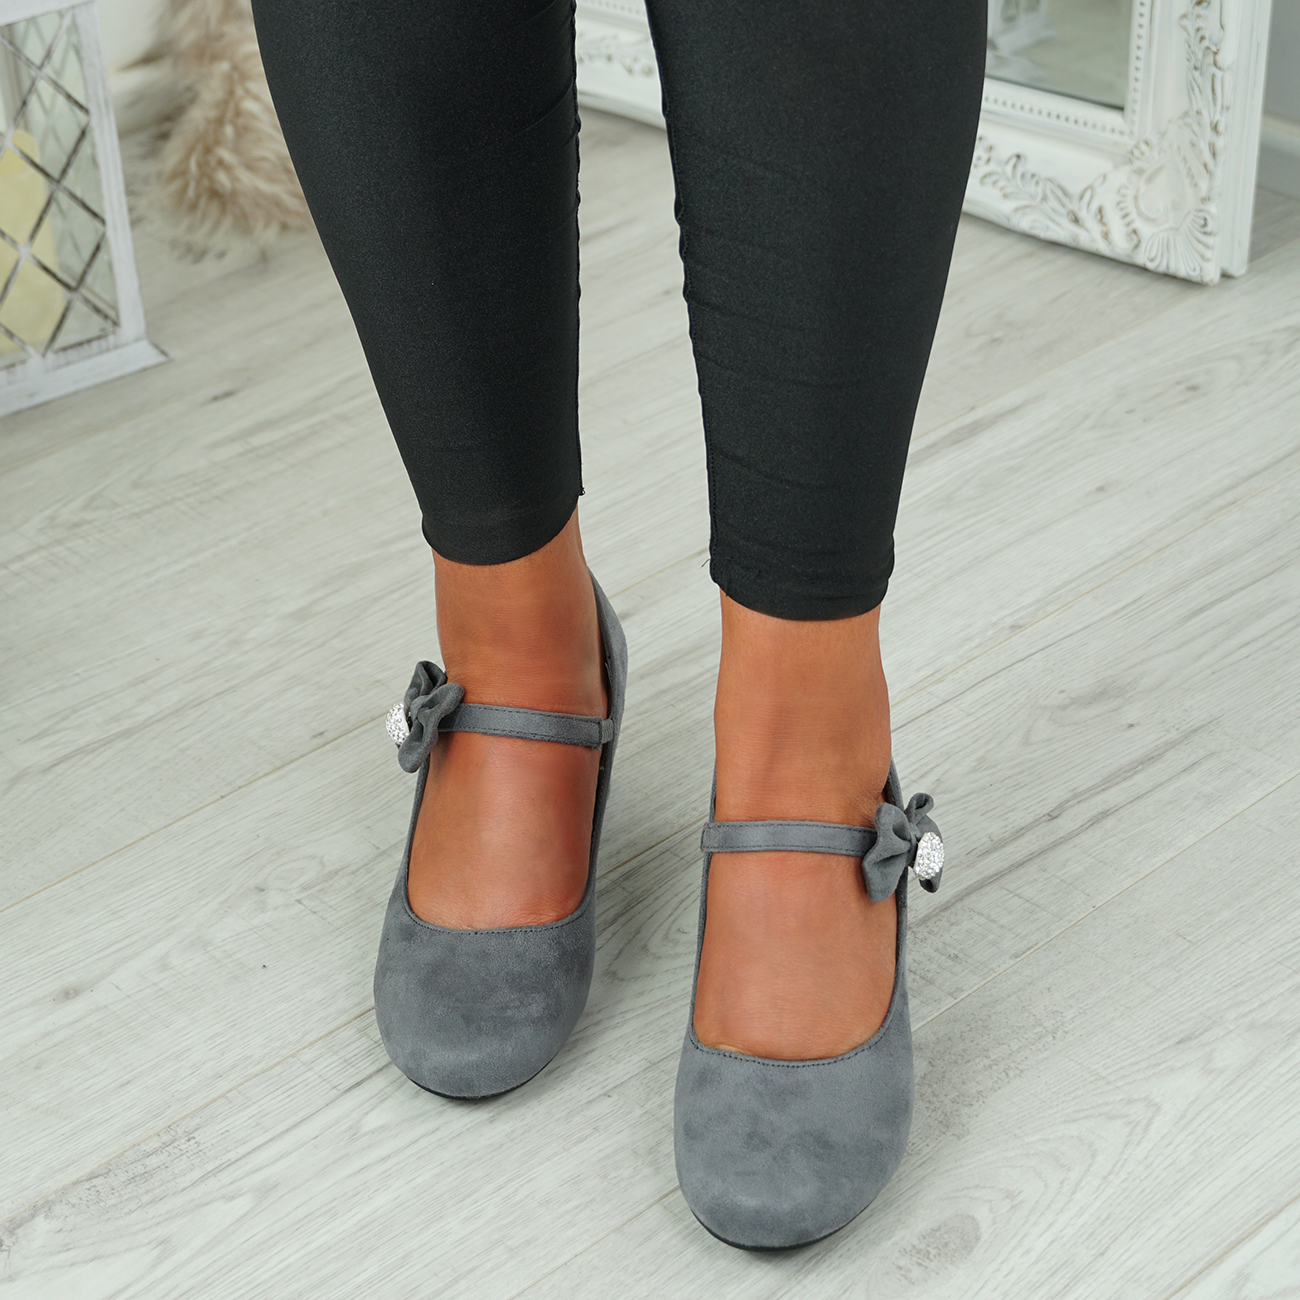 NEW-WOMENS-BLOCK-HEEL-PUMPS-BOW-BUCKLE-STRAP-ROUNDED-TOE-CASUAL-SHOES-SIZE thumbnail 17